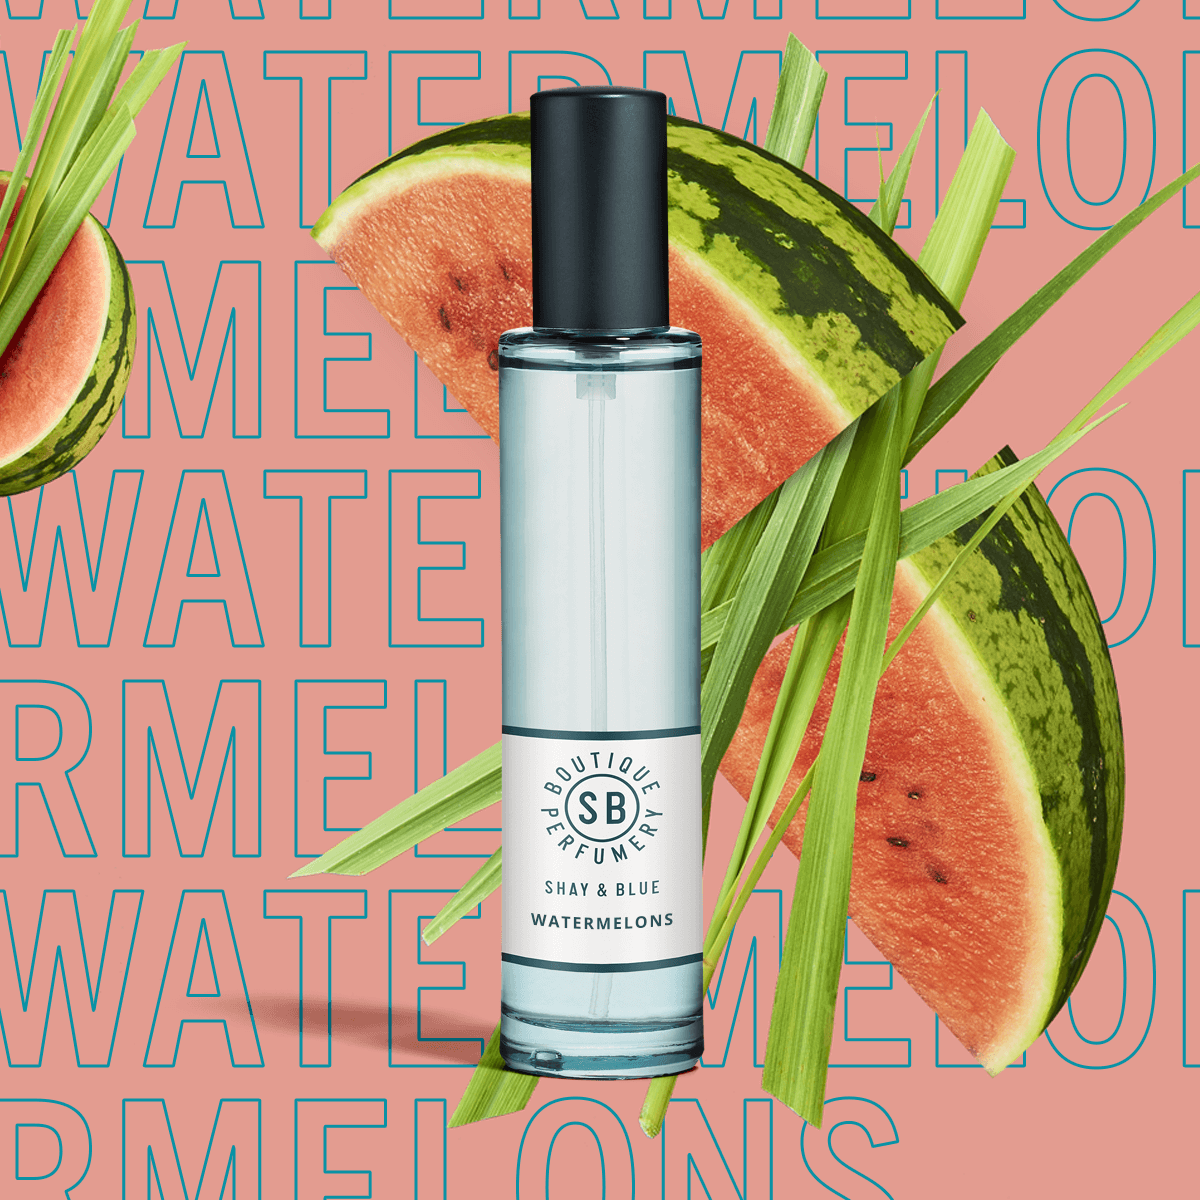 Watermelons Fragrance 30ml | Watermelon freshness with green mandarin and cut grass. | Clean All Gender Fragrance | Shay & Blue